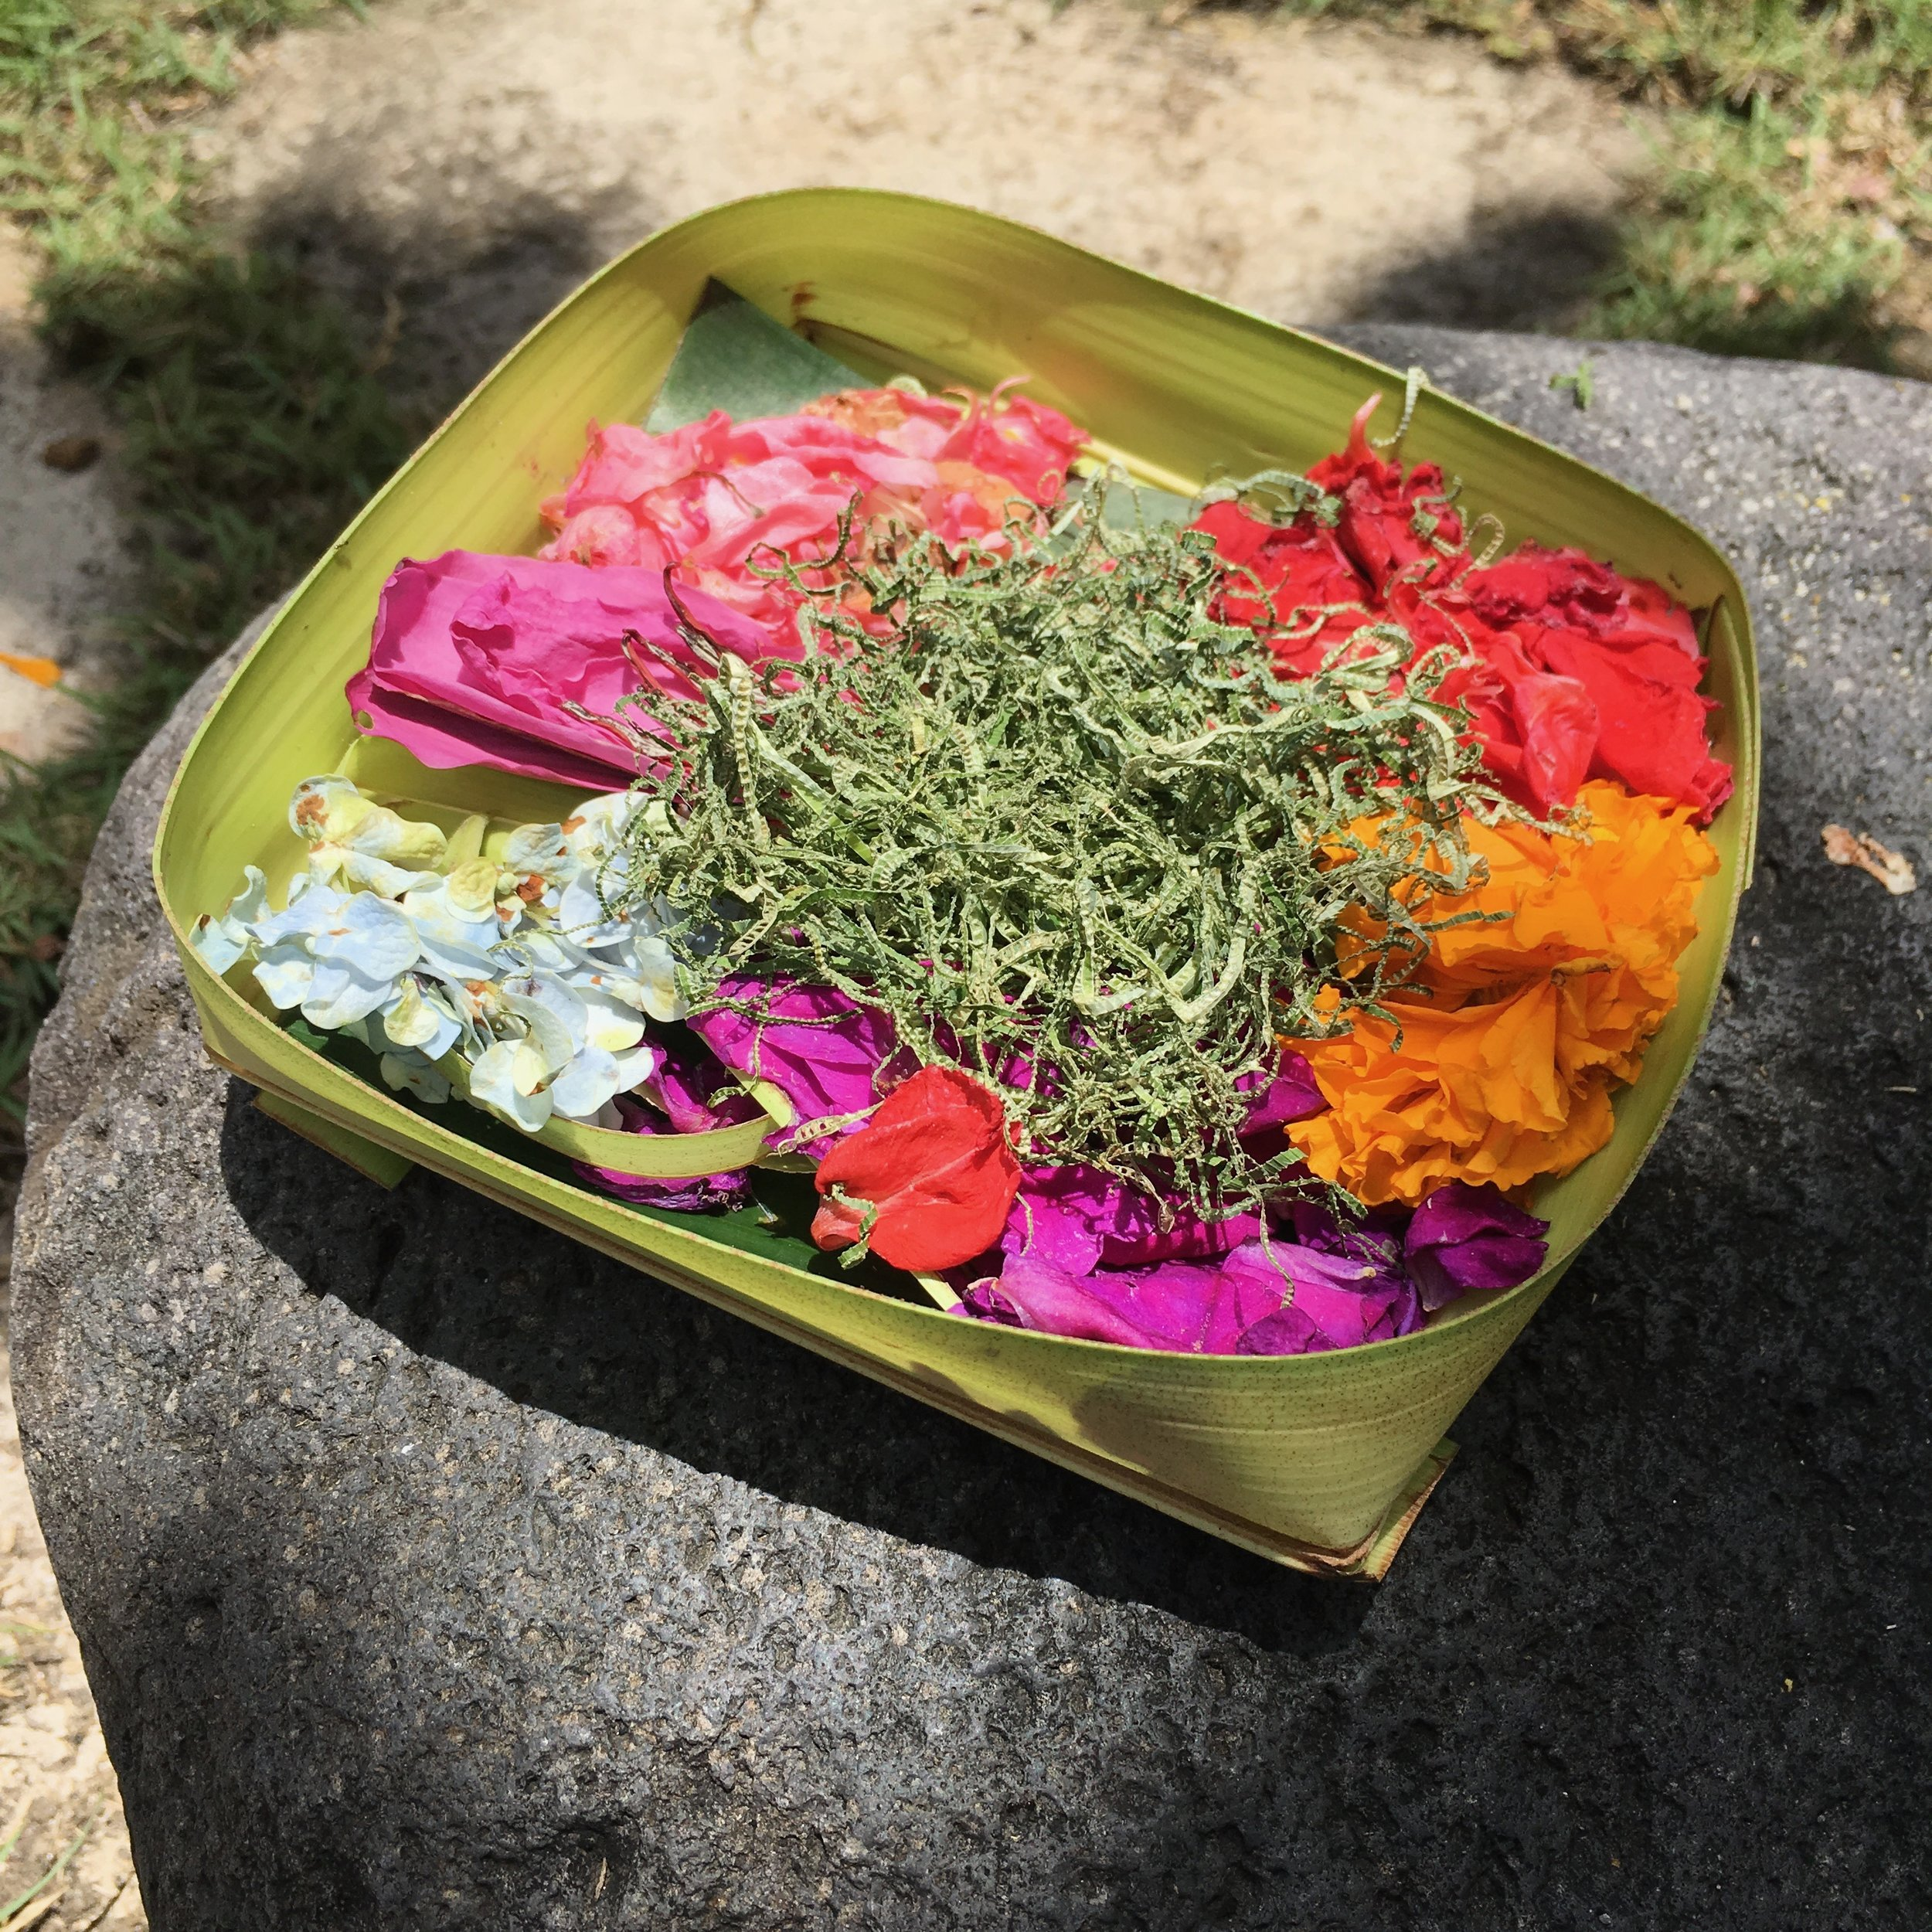 Floral offerings - often including food and a small coin - are put out every morning